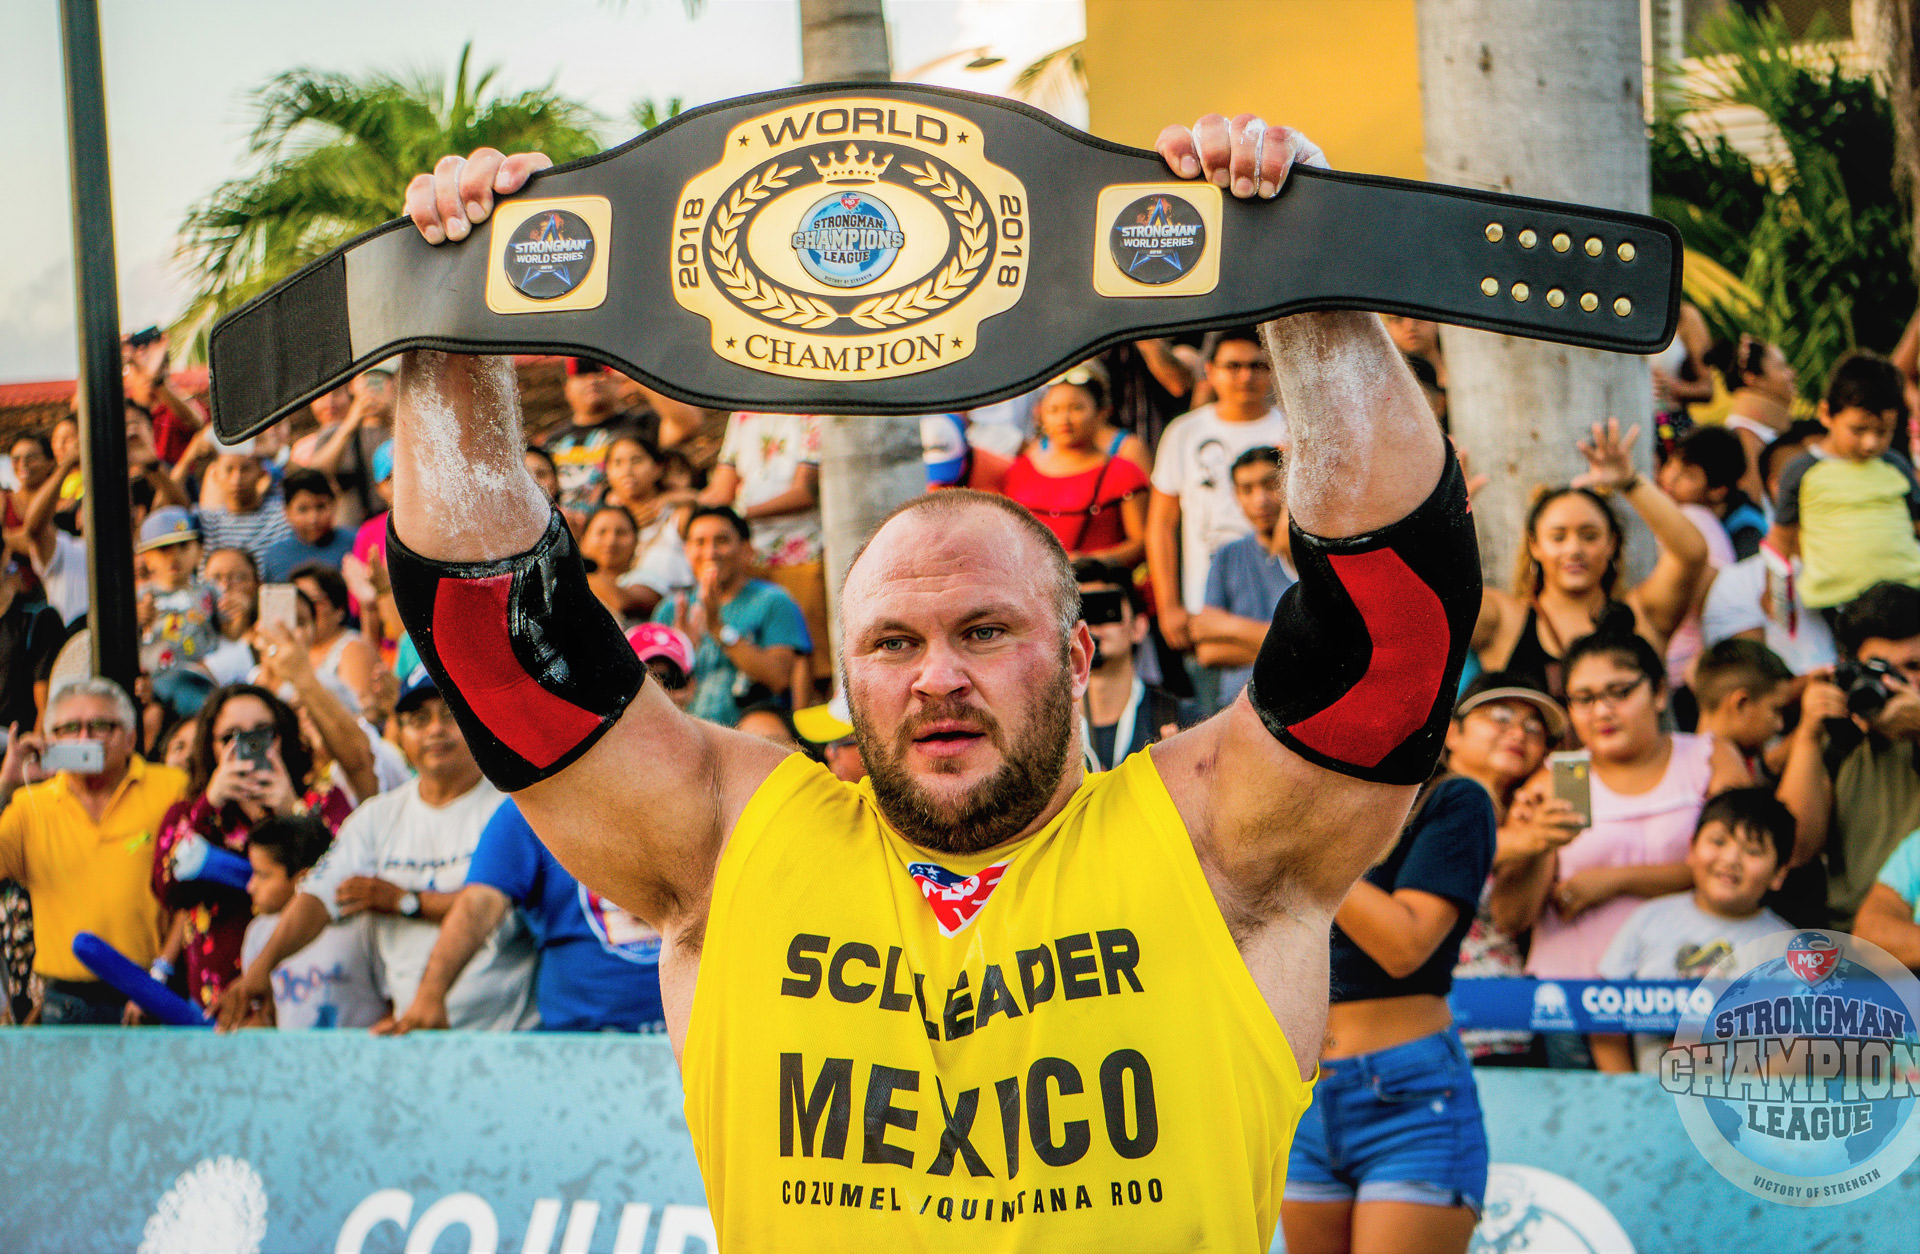 Dainis Zageris Win The World Title 2018 In Cozumel-Mexico